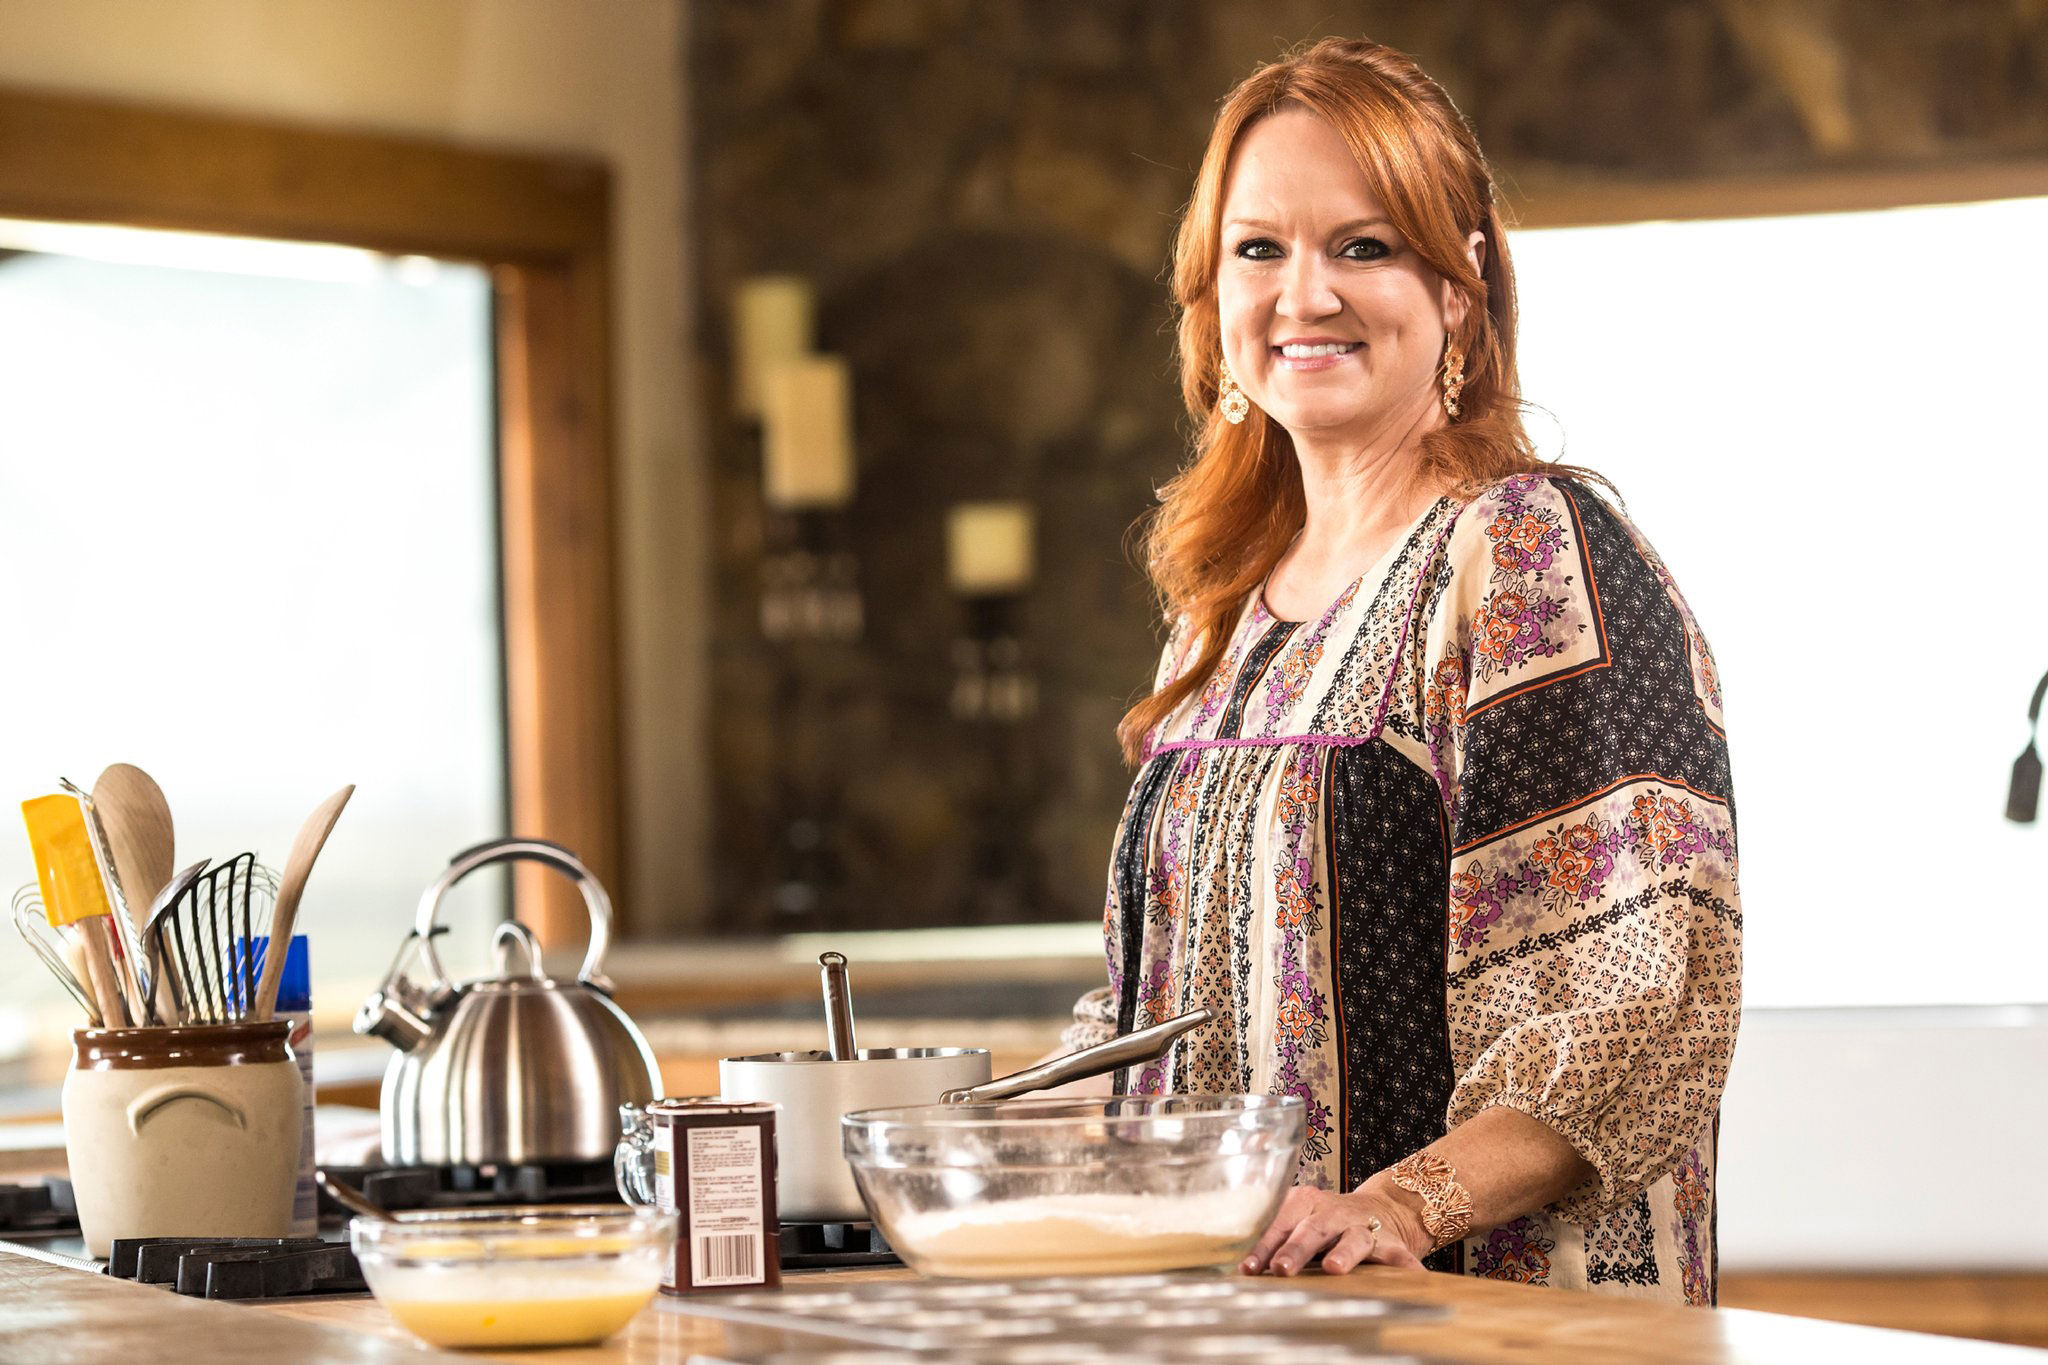 WATCH: How To Make a Party Tray Like Ree Drummond for the Holidays